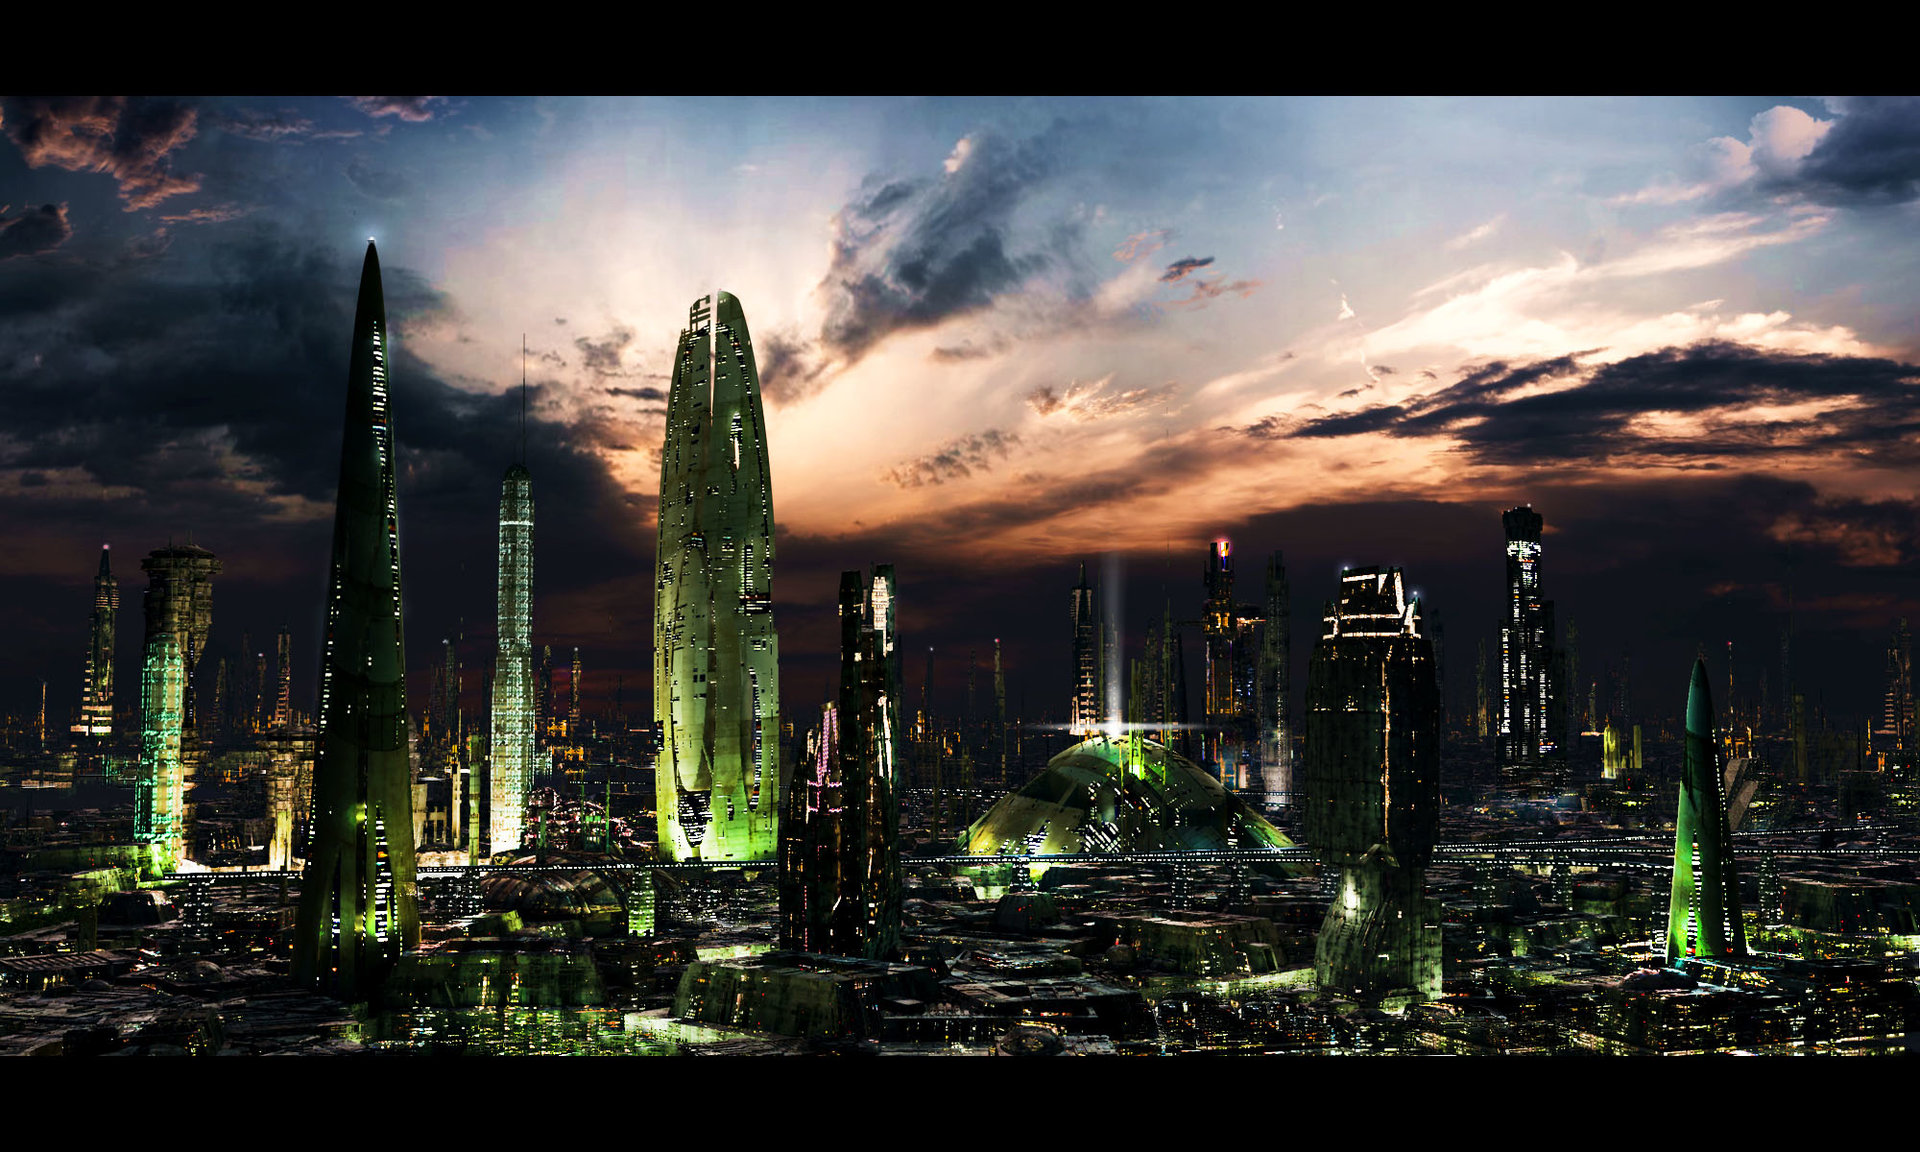 Scott richard futuristic city 3 test by rich35211 d37li6m